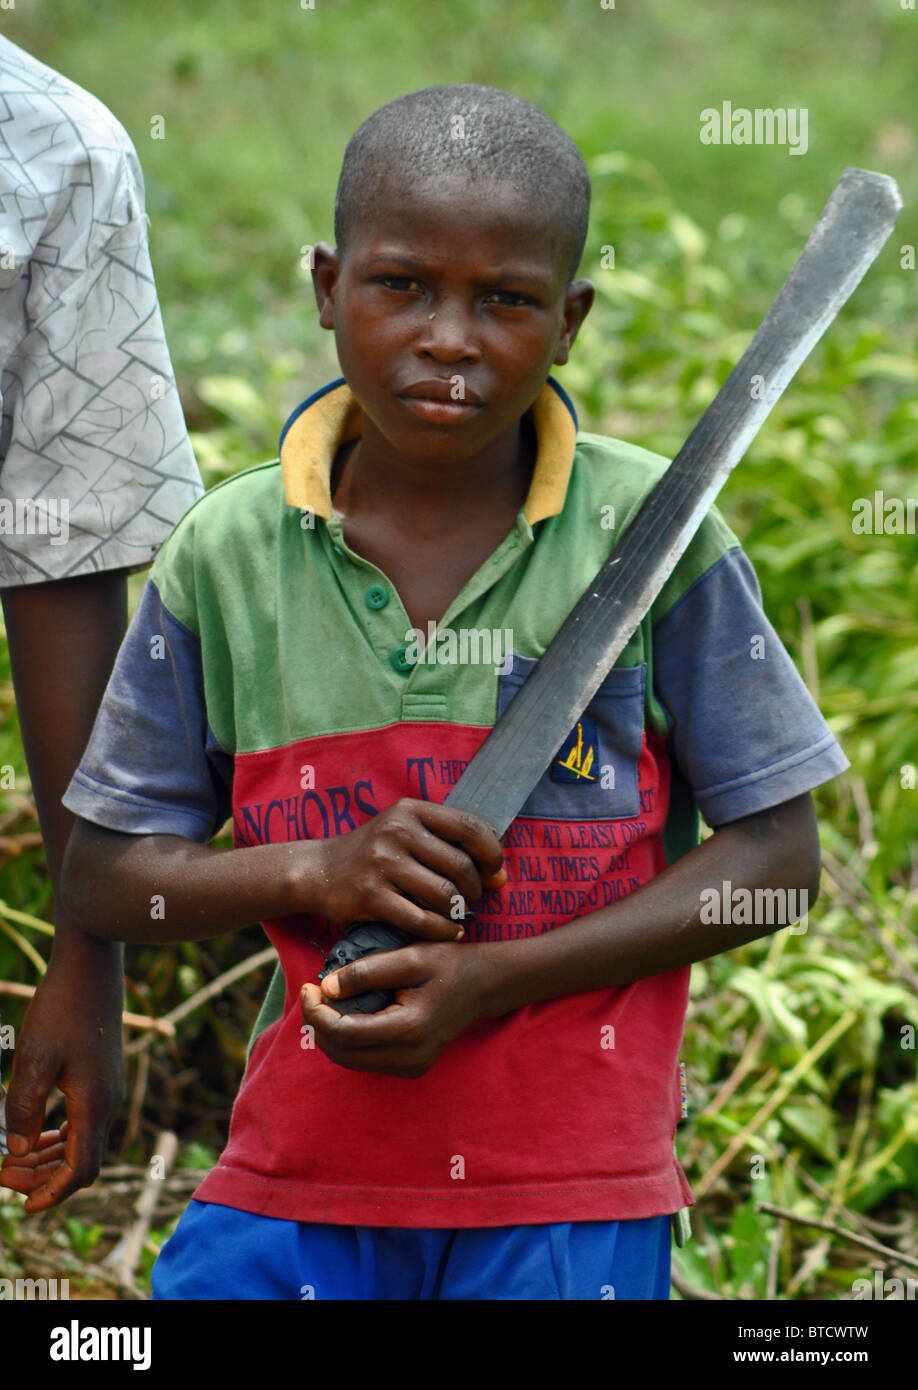 Young child with machete, for felling trees in Western Ivory Coast, West Africa - Stock Image